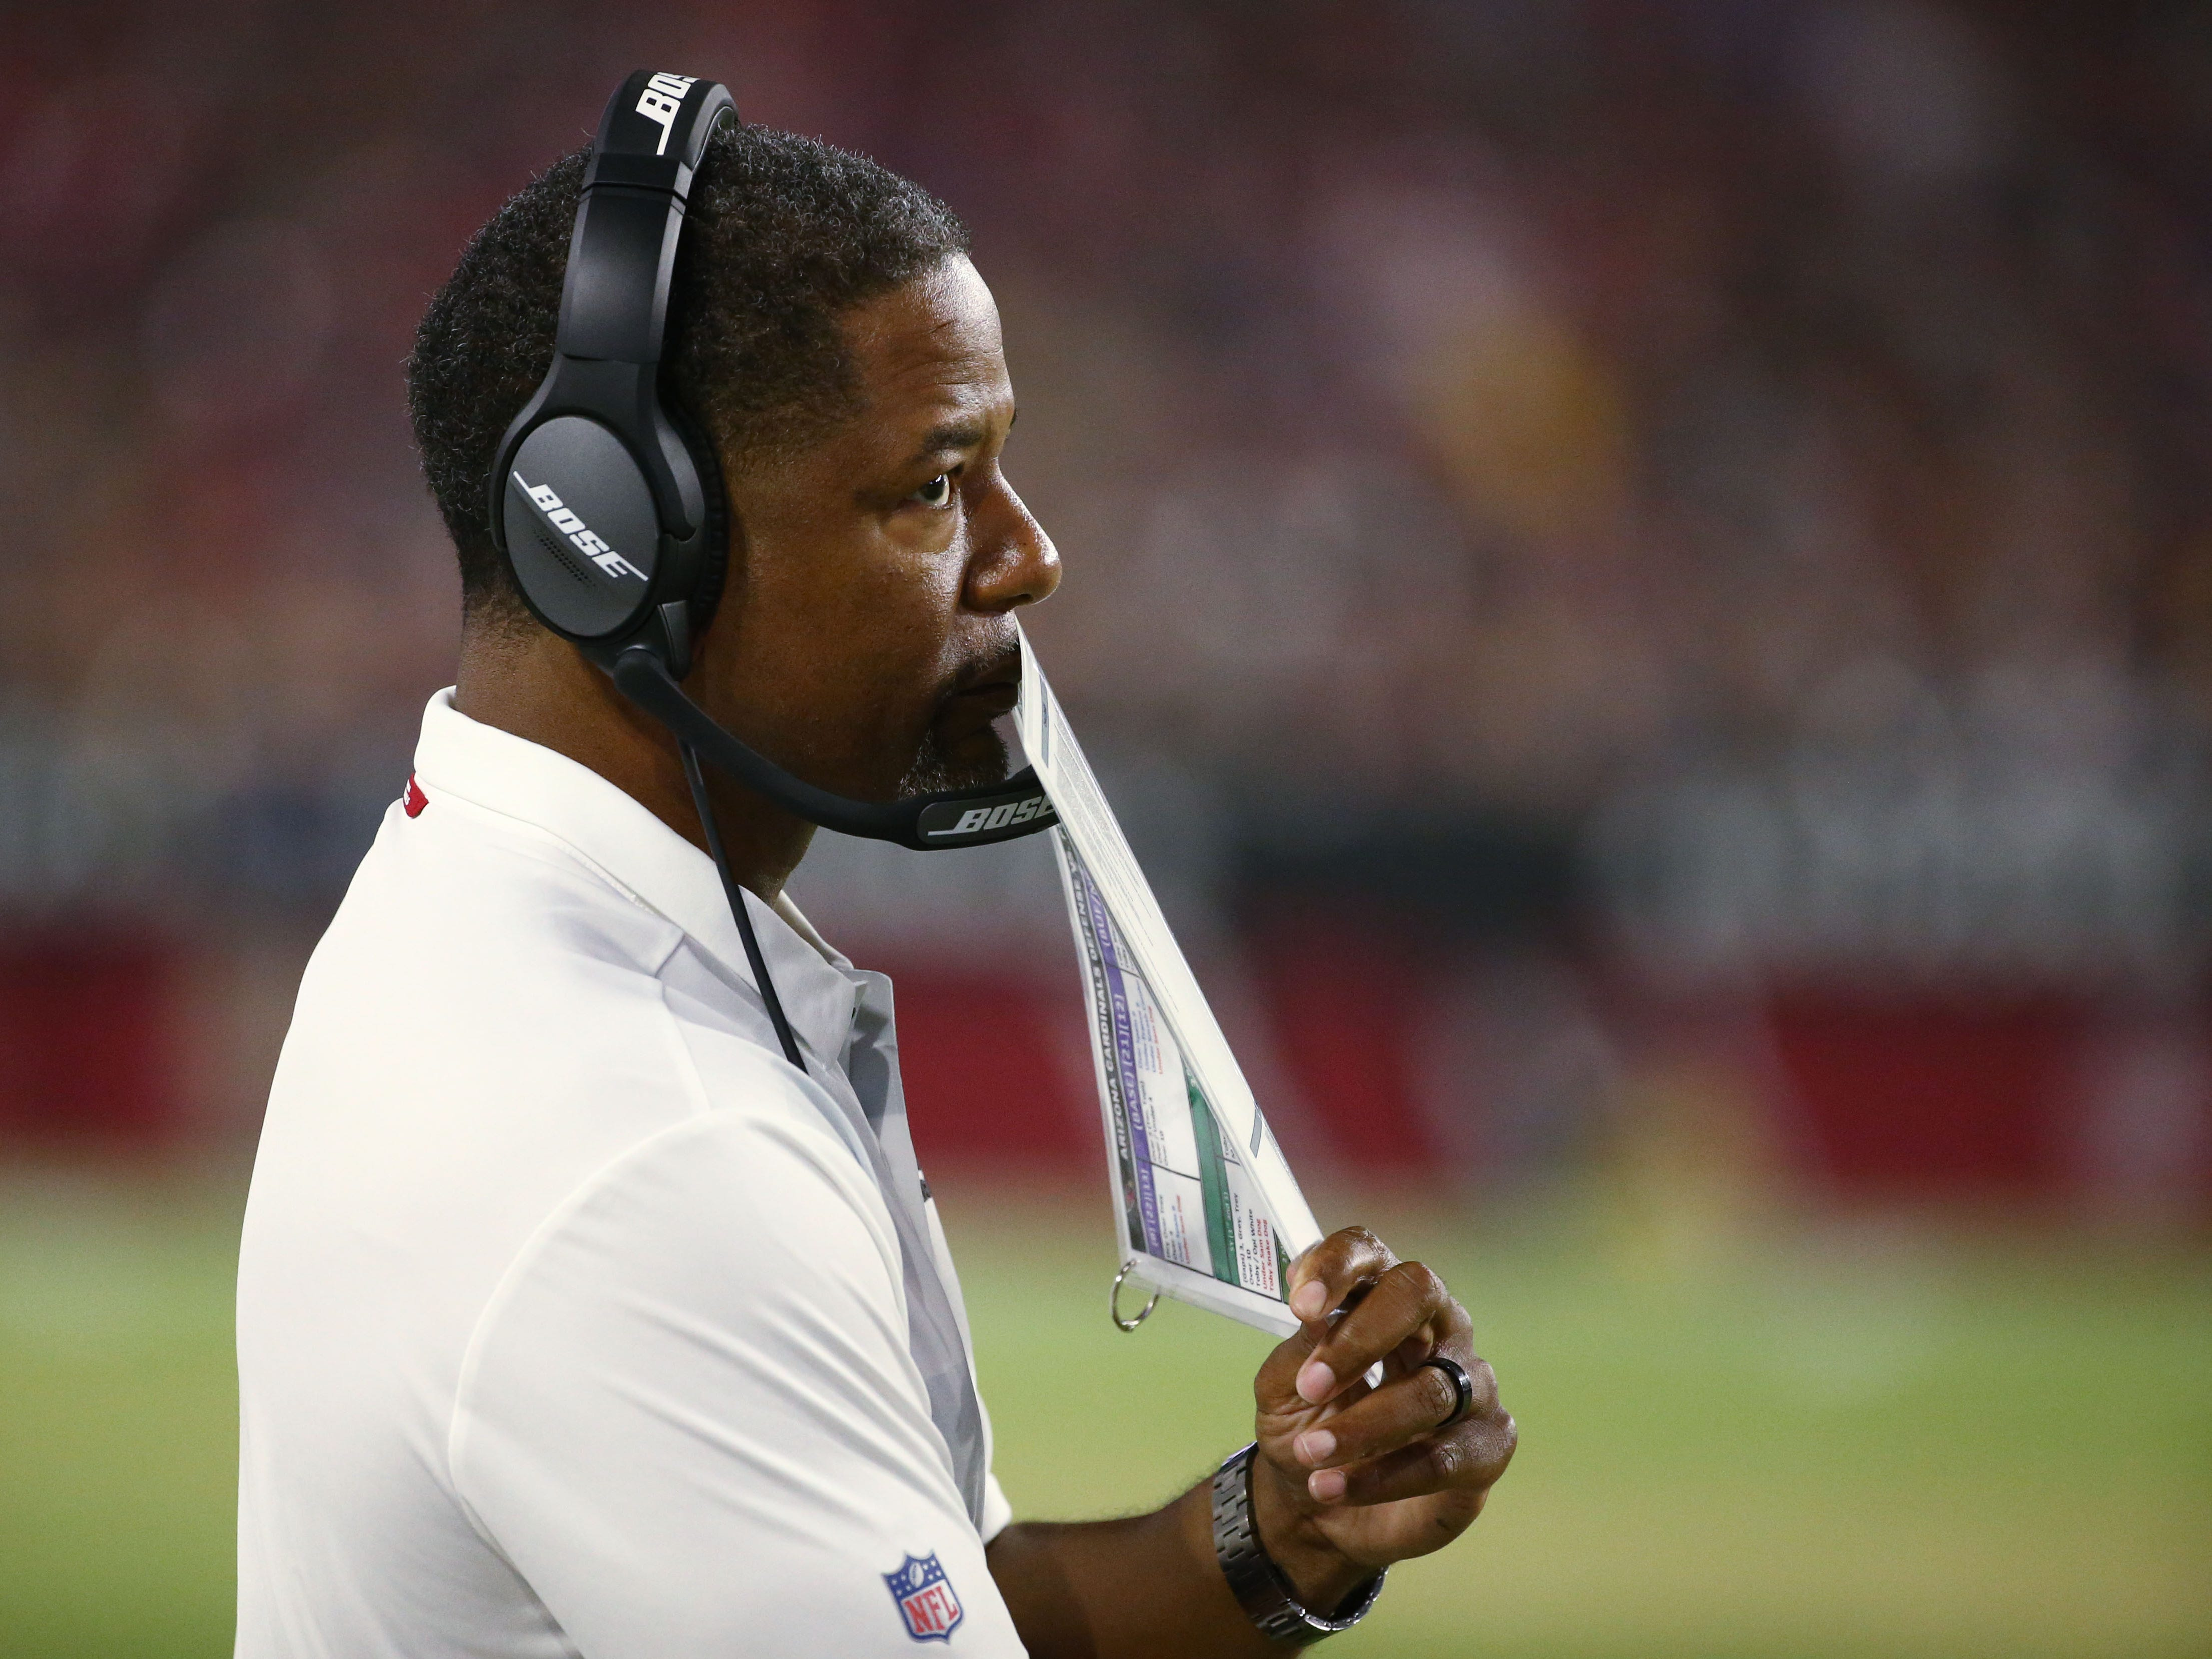 Arizona Cardinals head coach Steve Wilks against the L.A. Chargers in the first half during a preseason NFL football game on Aug. 11, 2018 at University of Phoenix Stadium in Glendale, Ariz.